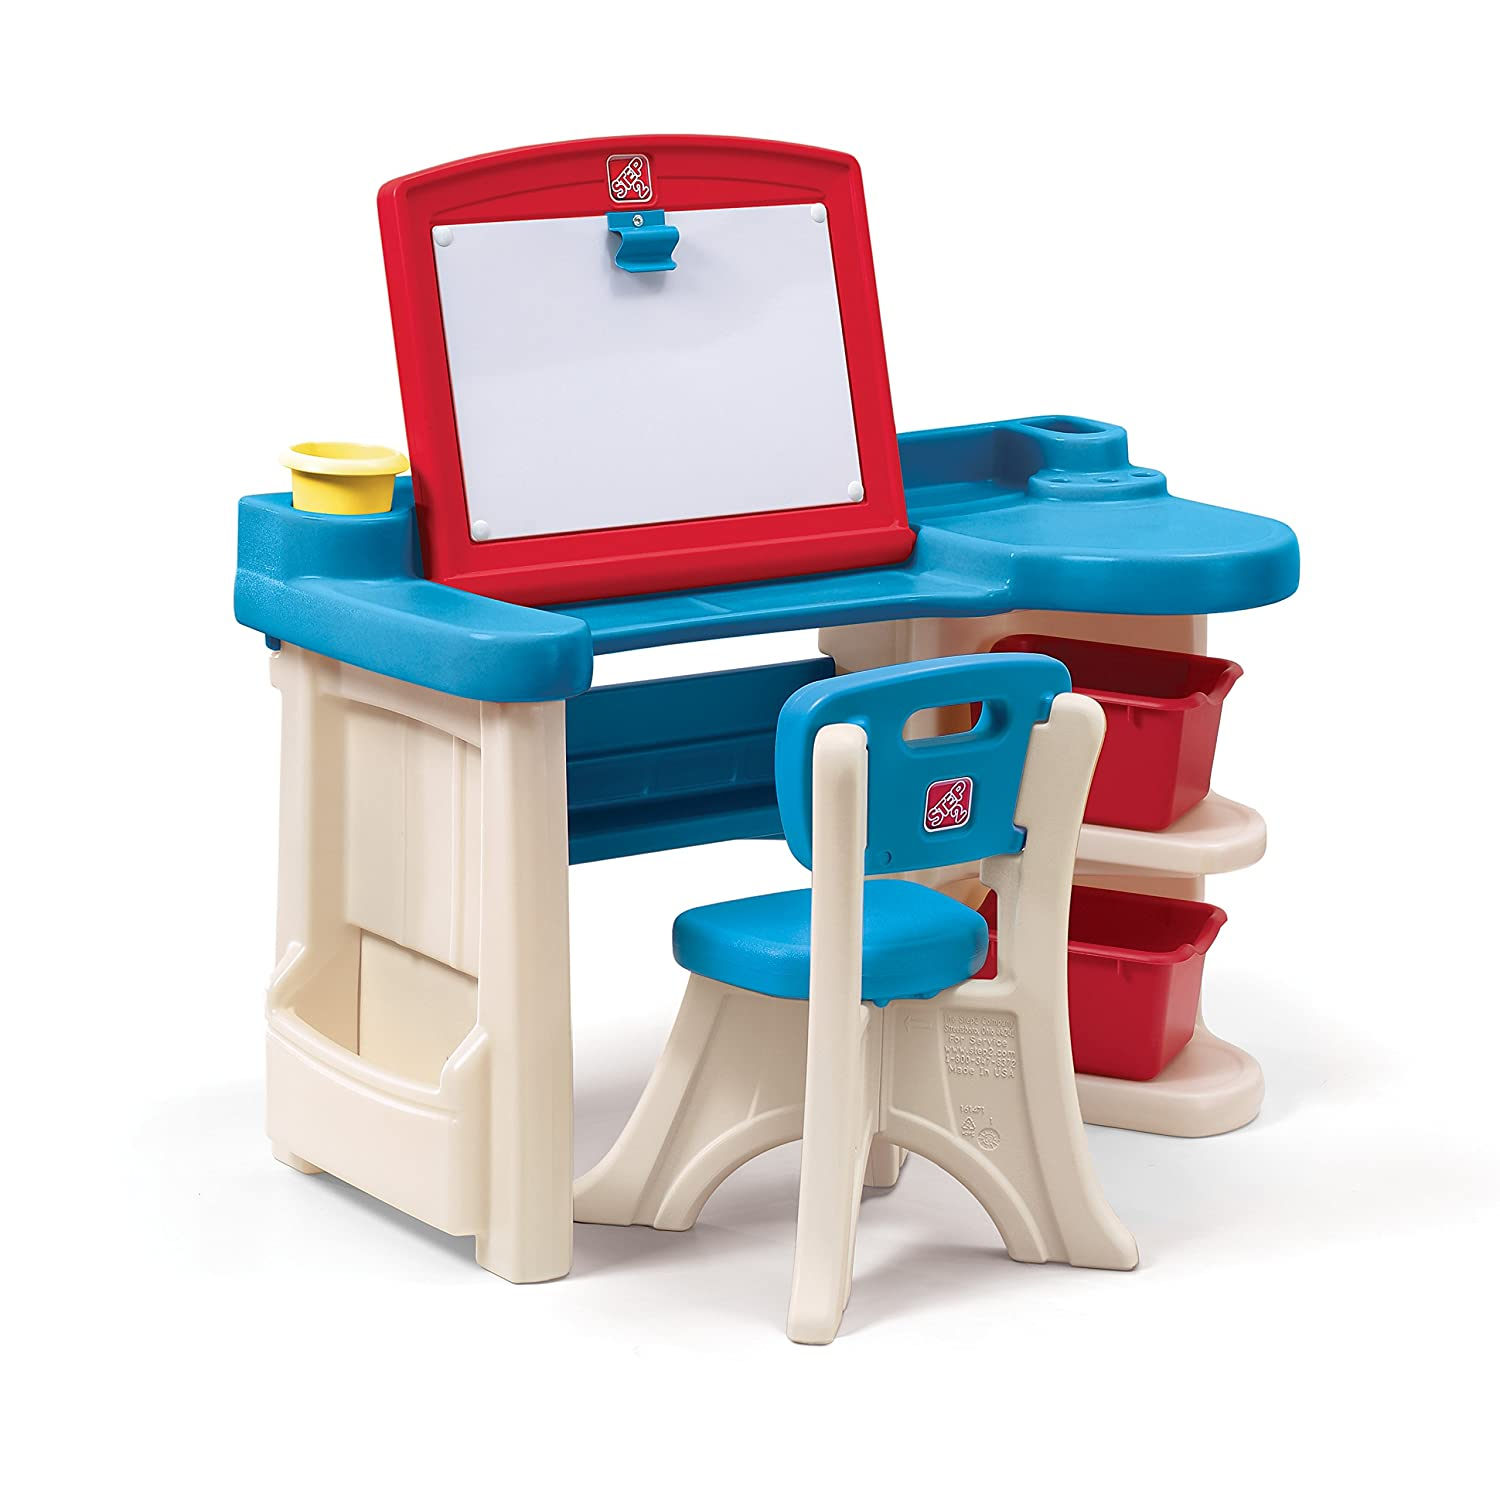 Amazon Step2 Studio Art Desk For Kids Toys & Games